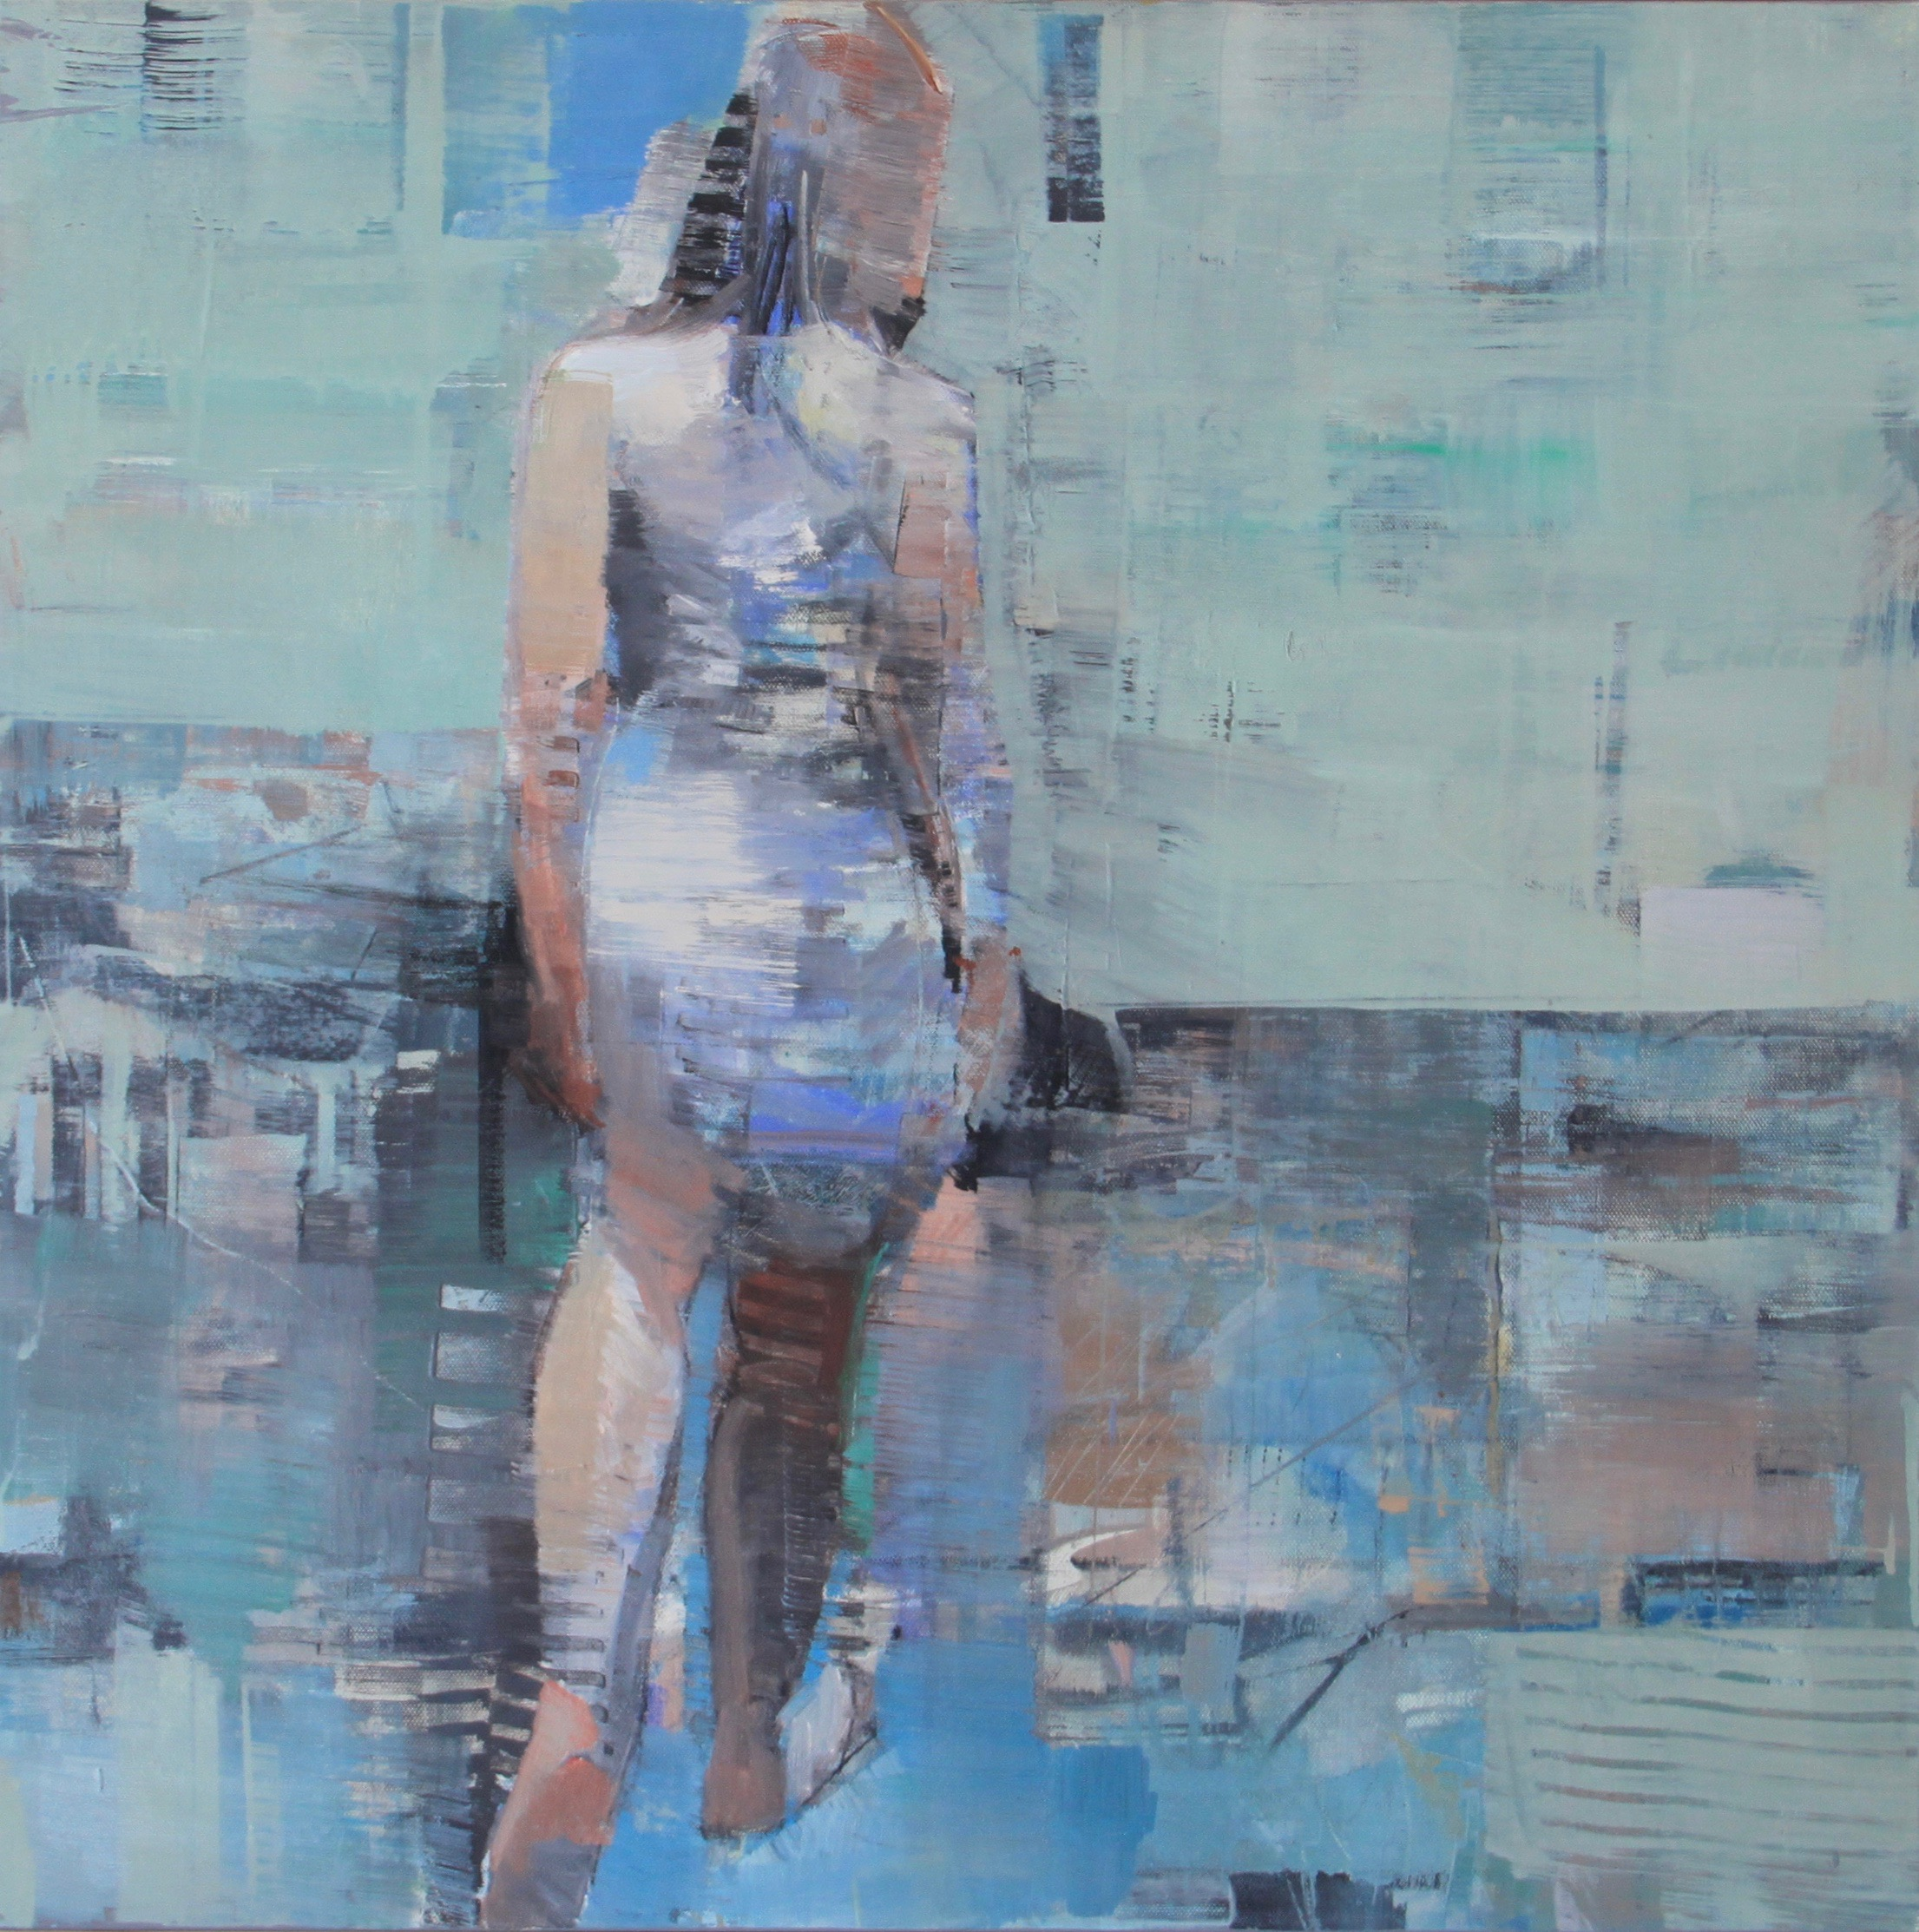 Woman walking away, blues, abstracted